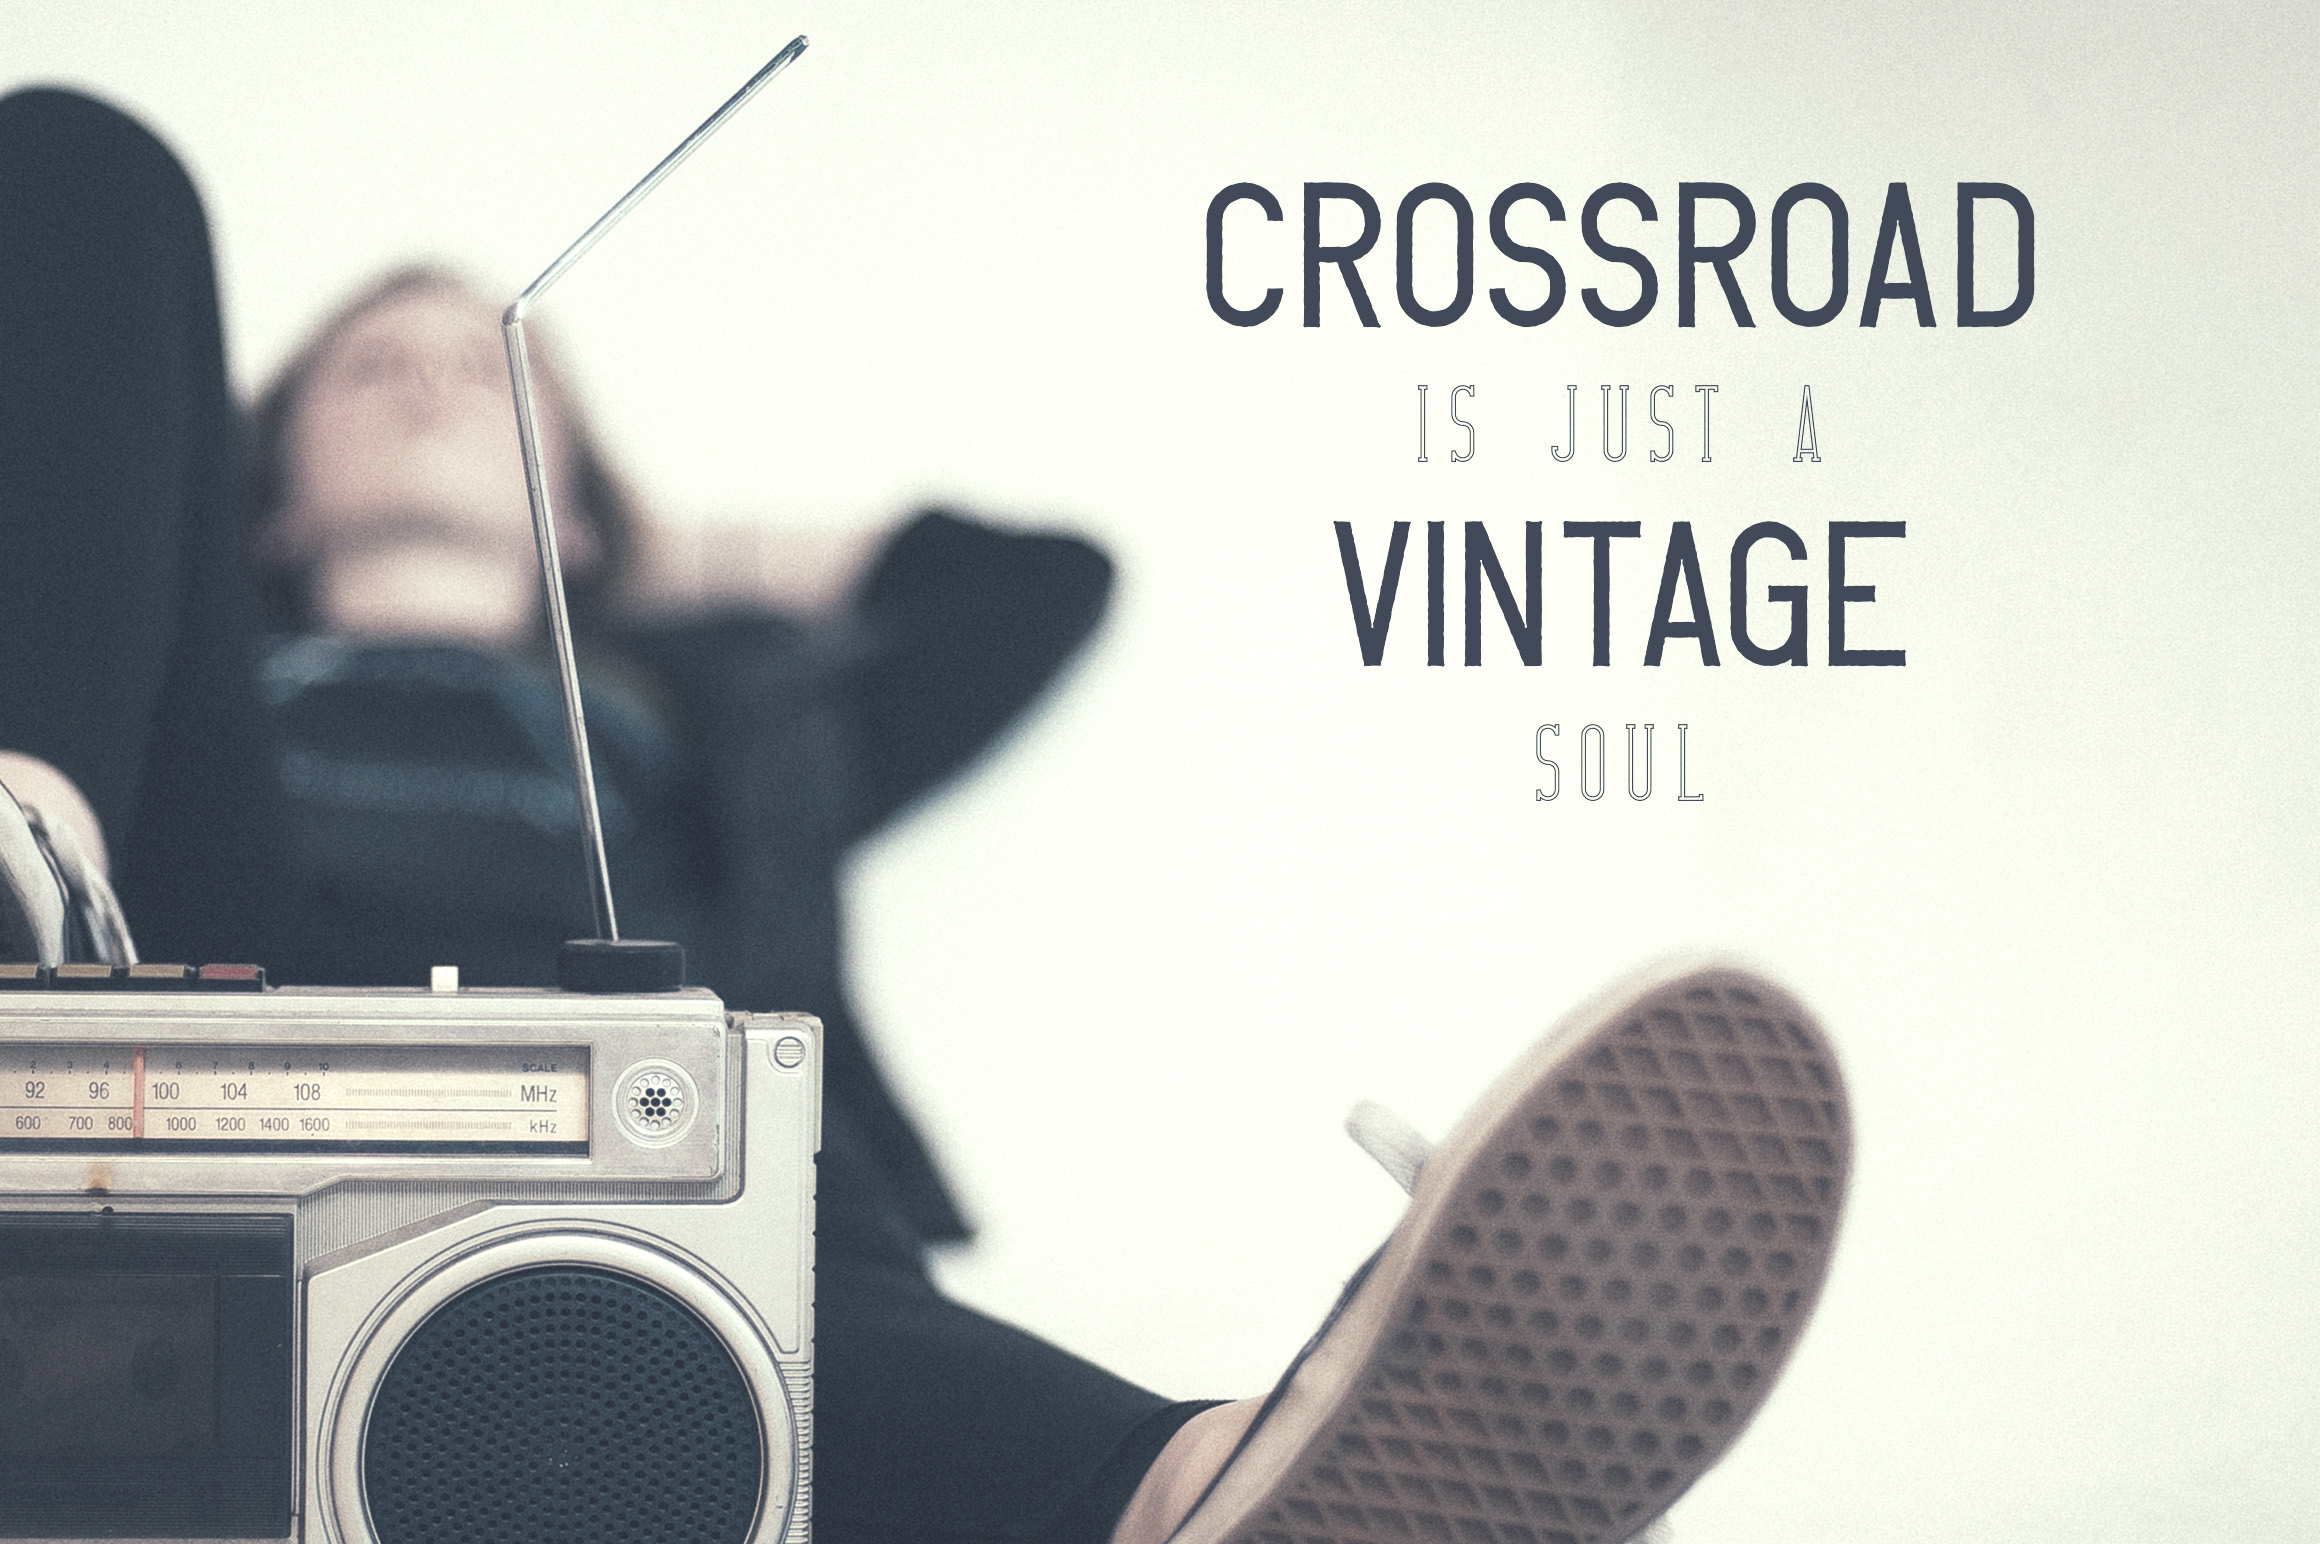 Crossroad -Vintage typeface|16 fonts example image 4